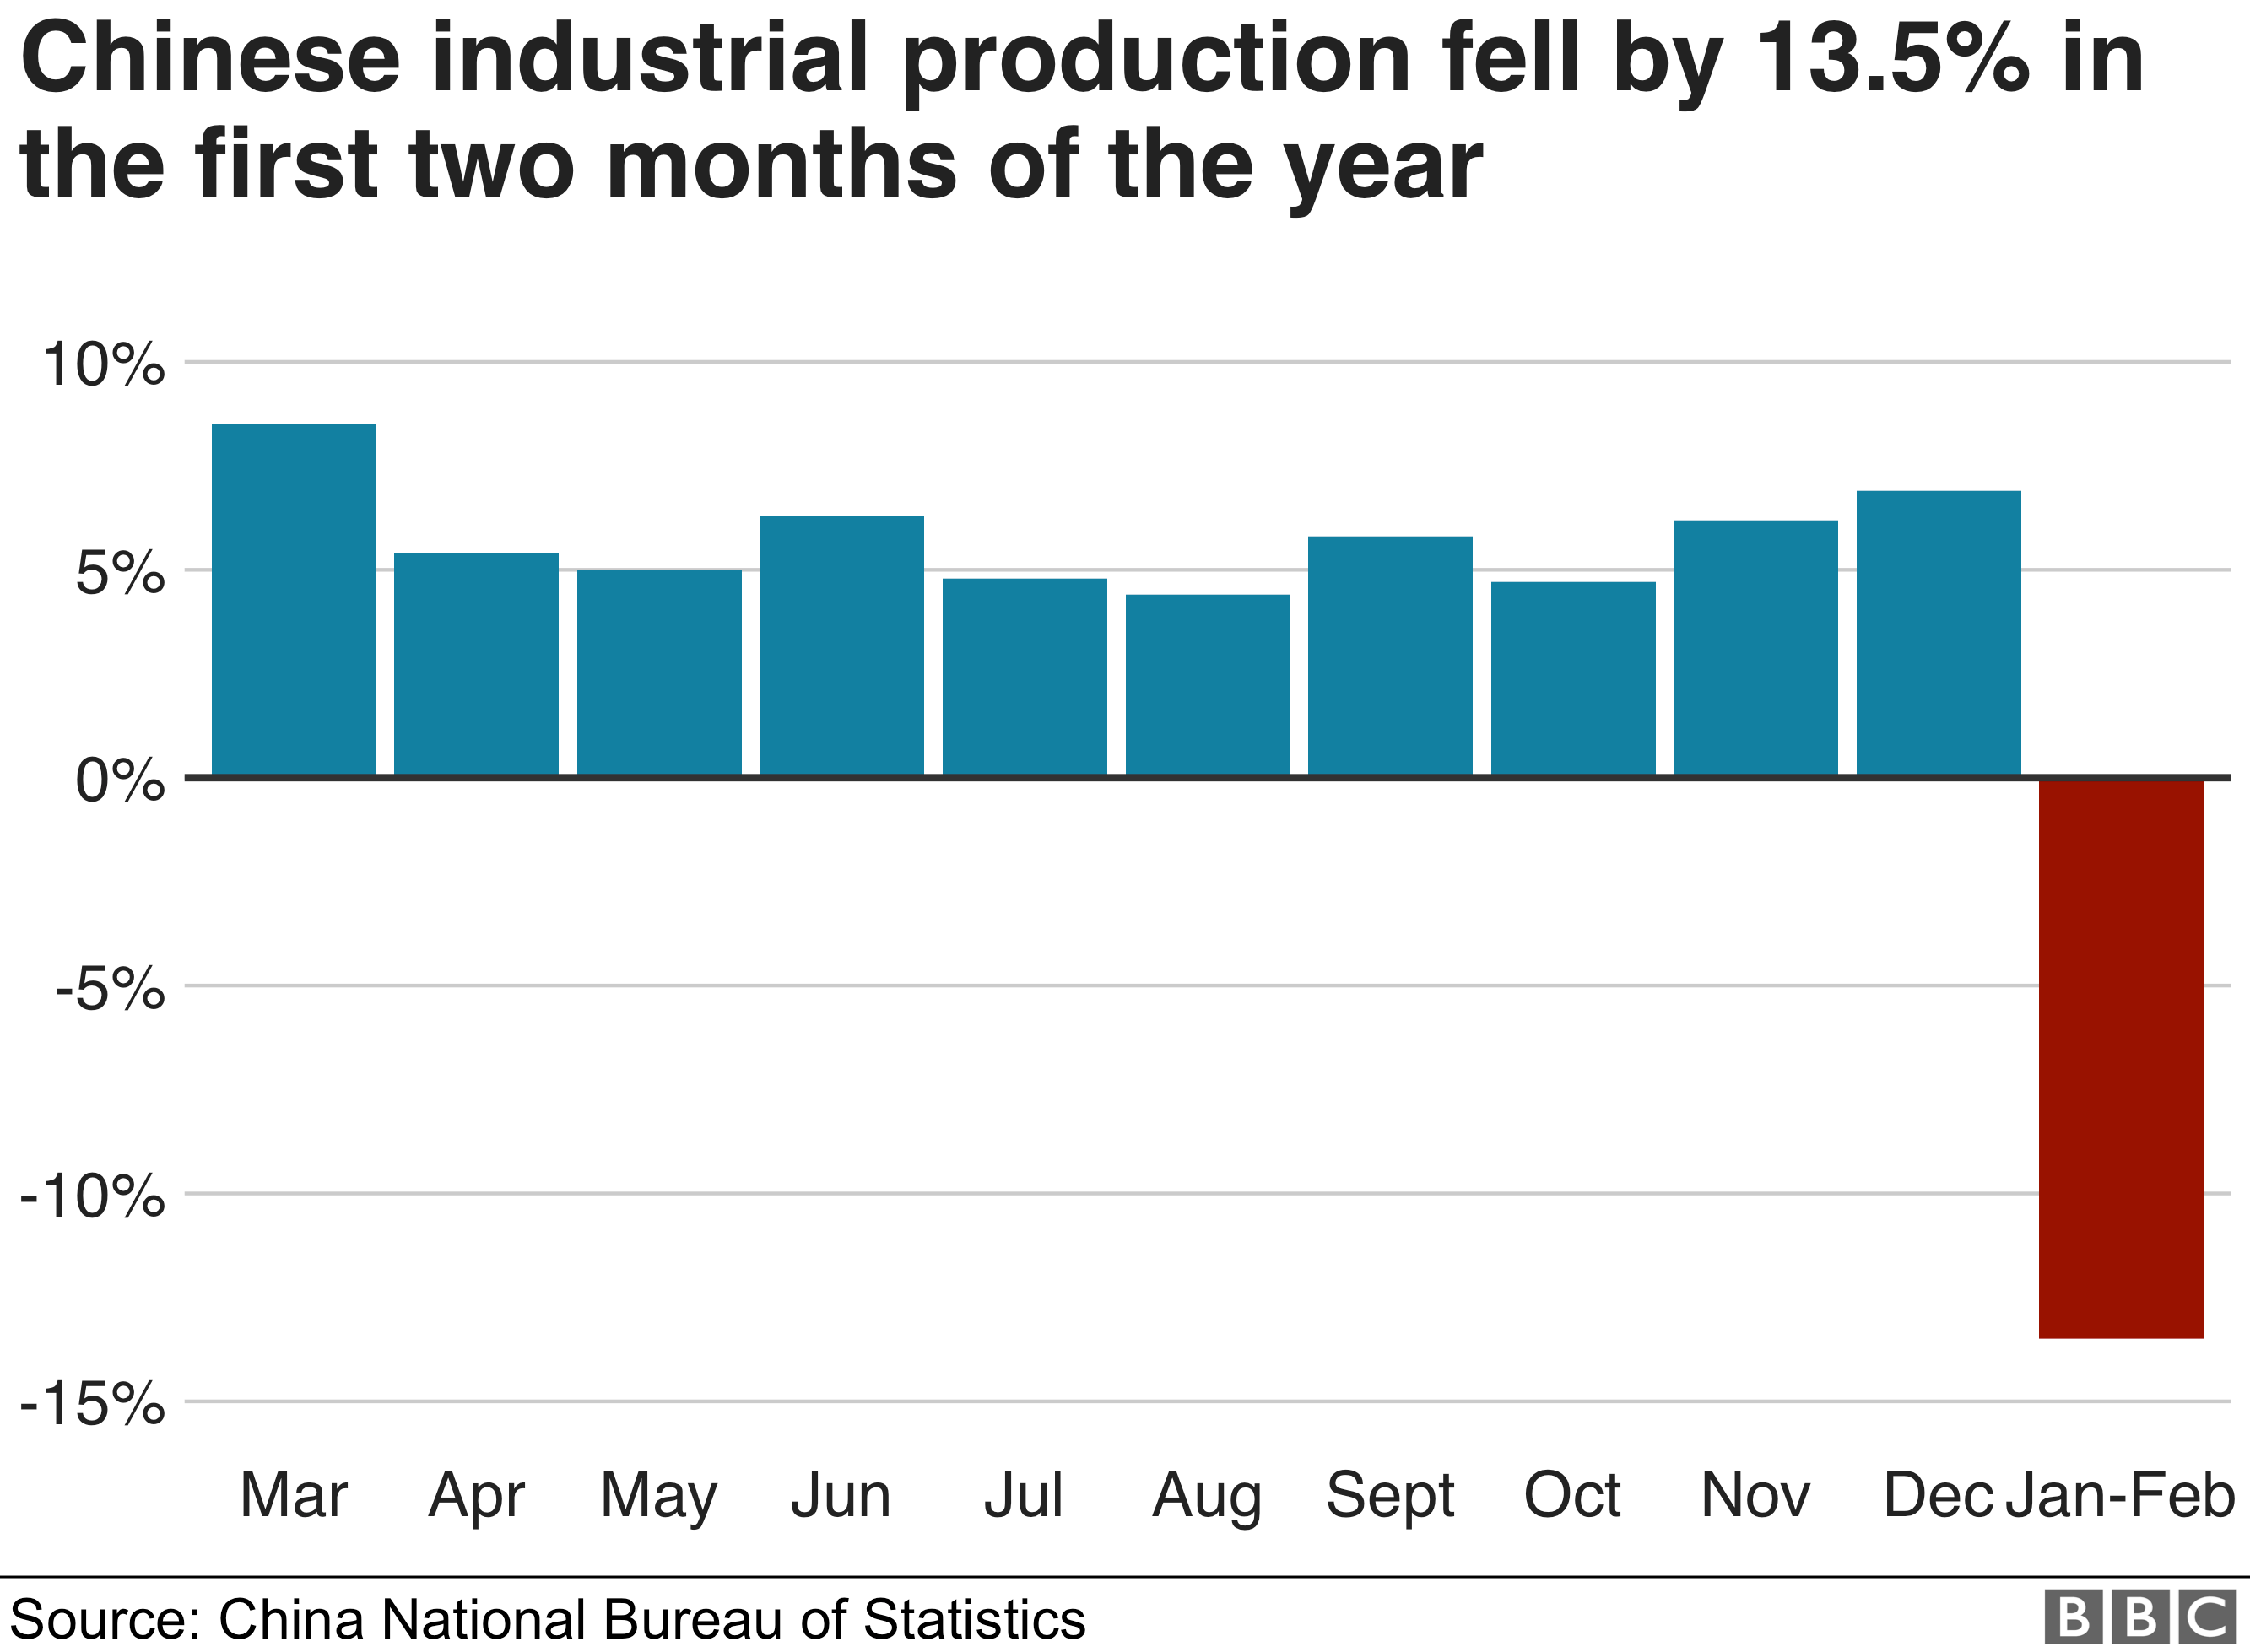 Chart showing industrial production in China